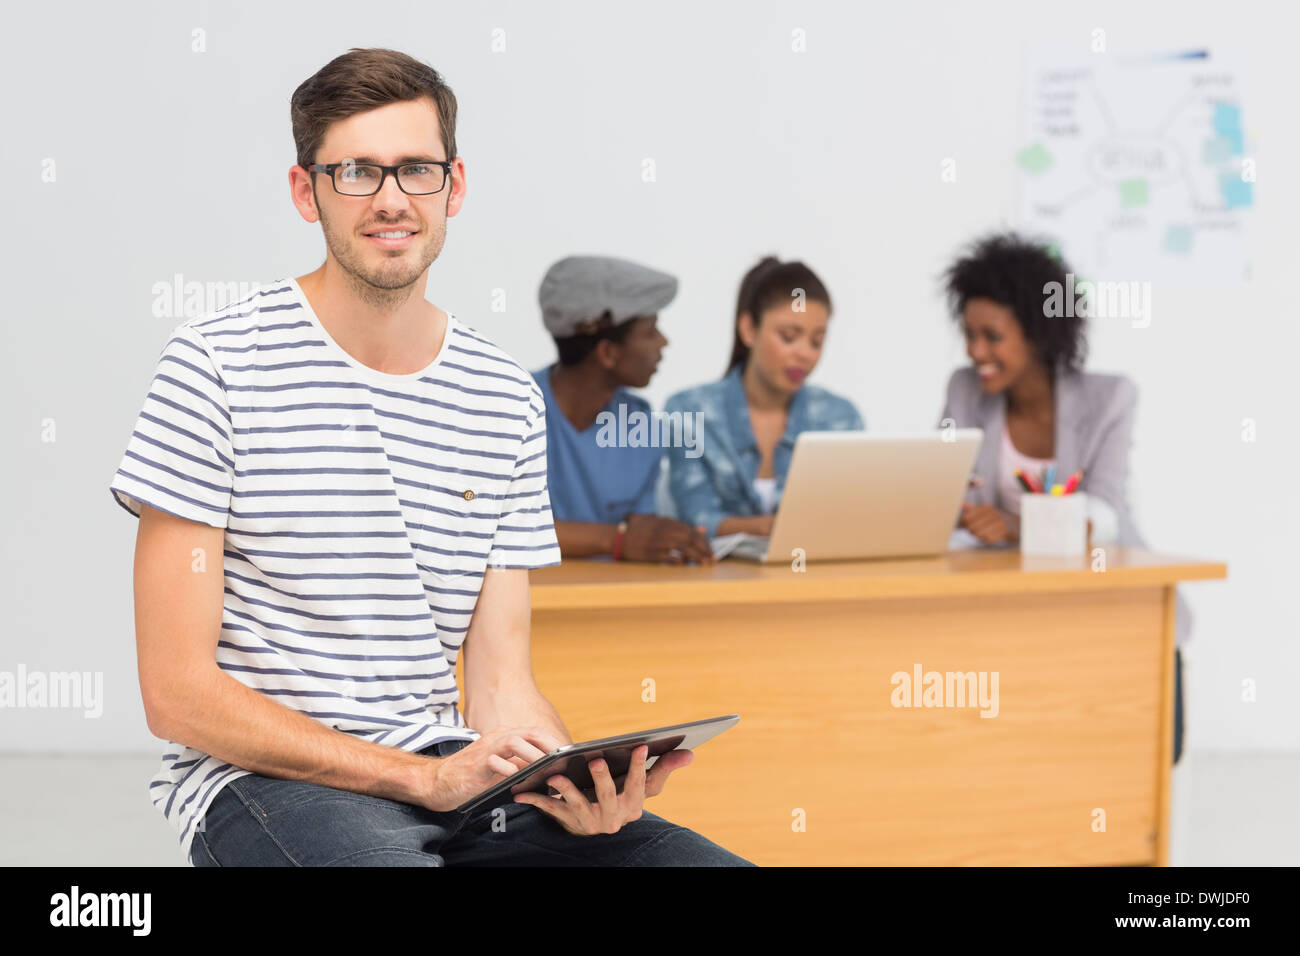 Artist using digital tablet with colleagues in background at office Stock Photo